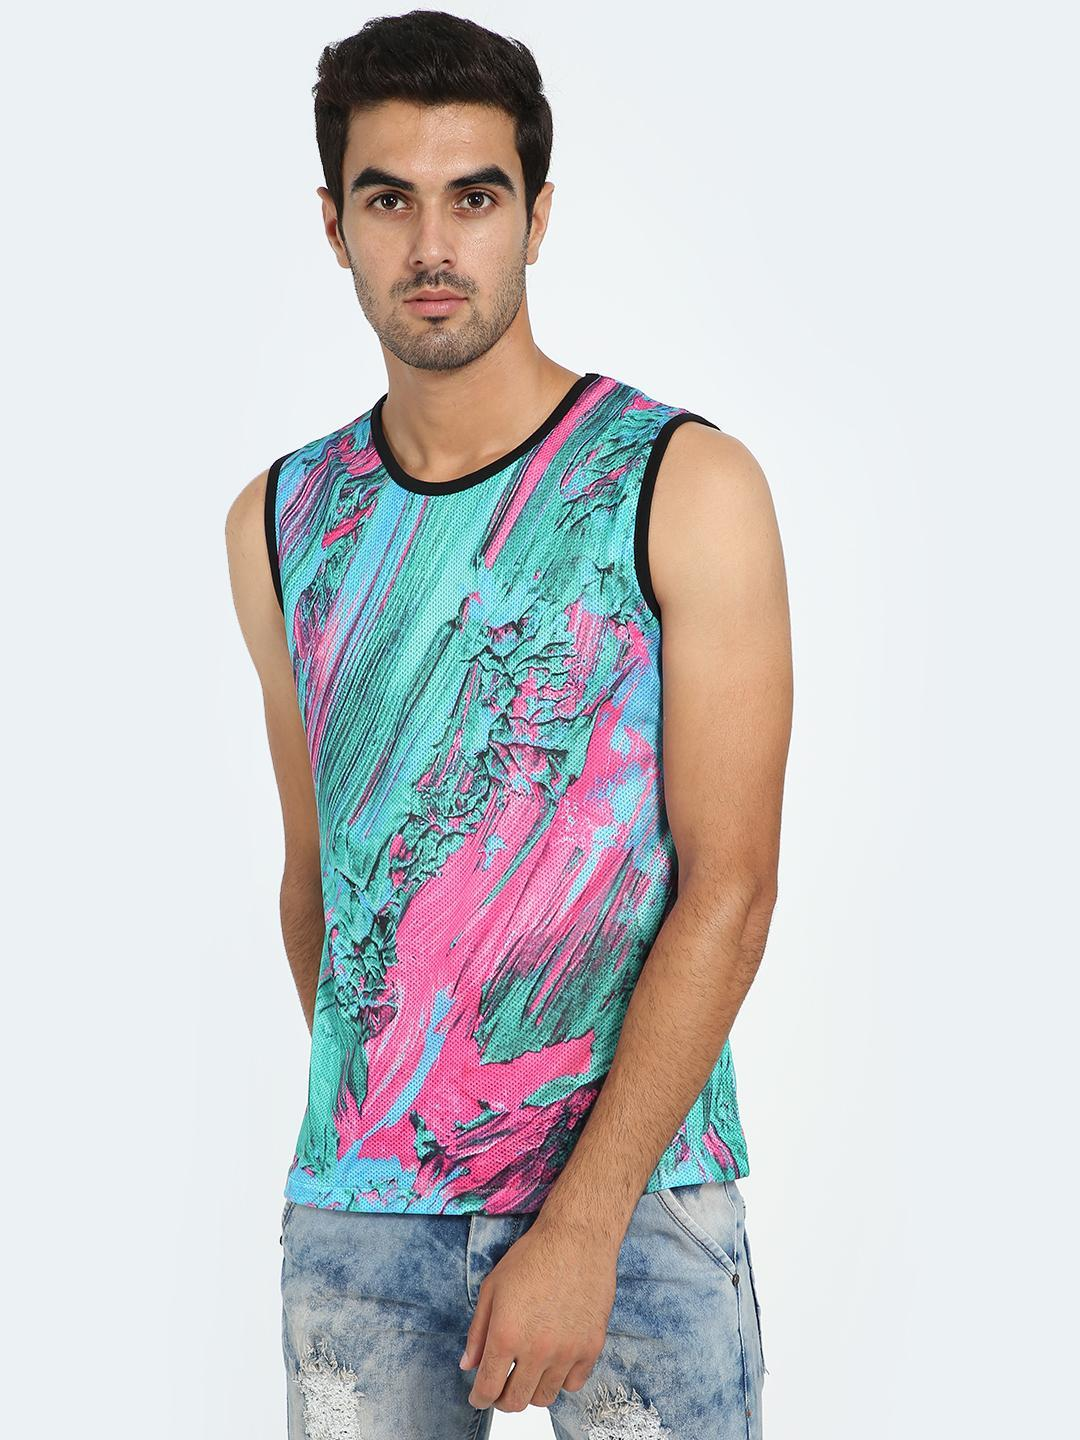 Garcon Blue Sublimation Print Mesh Vest 1